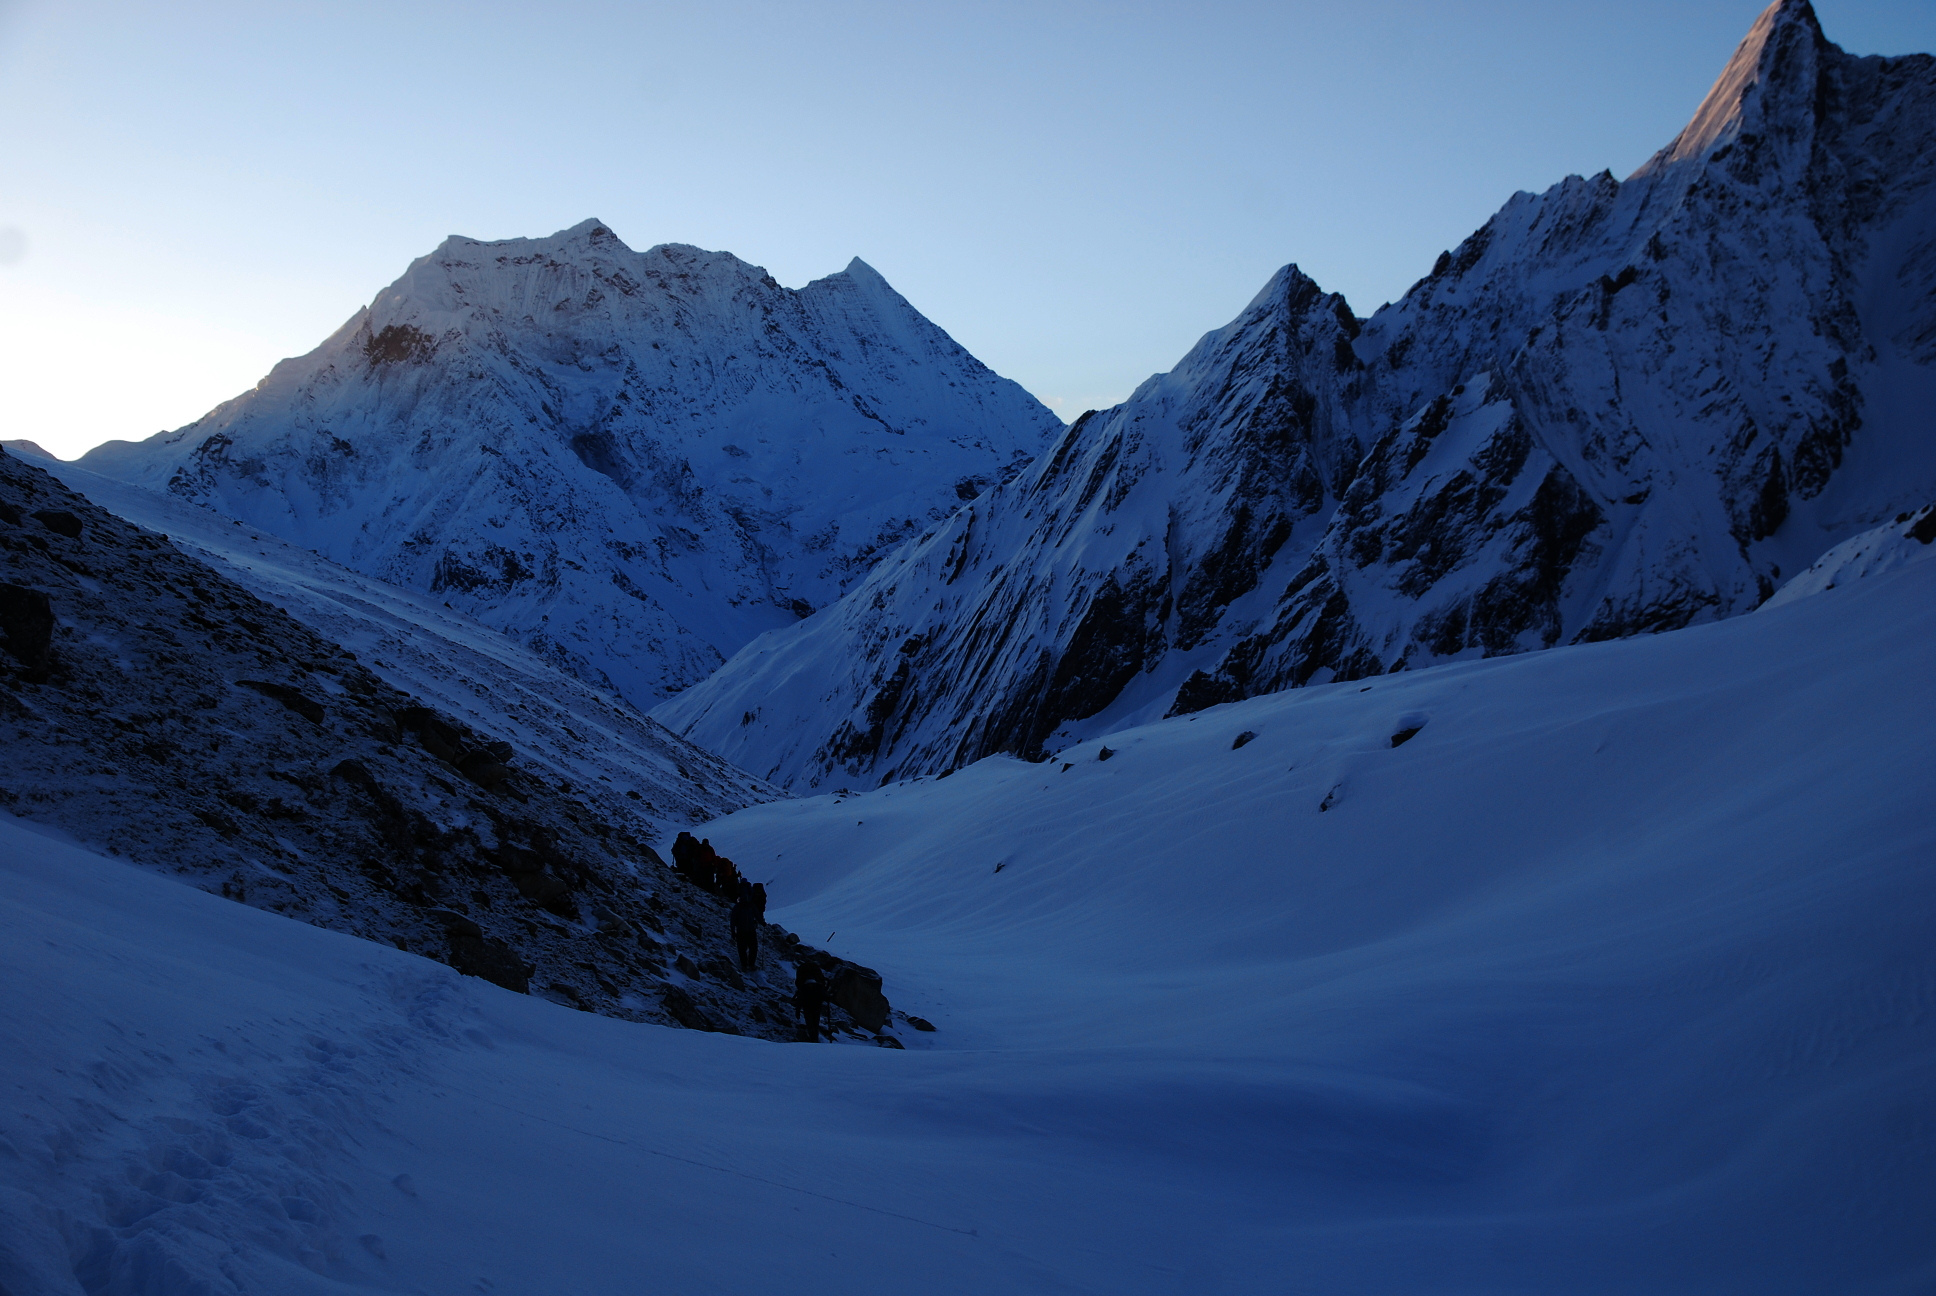 Manaslu_EarlyMorning2_AANepal.JPG